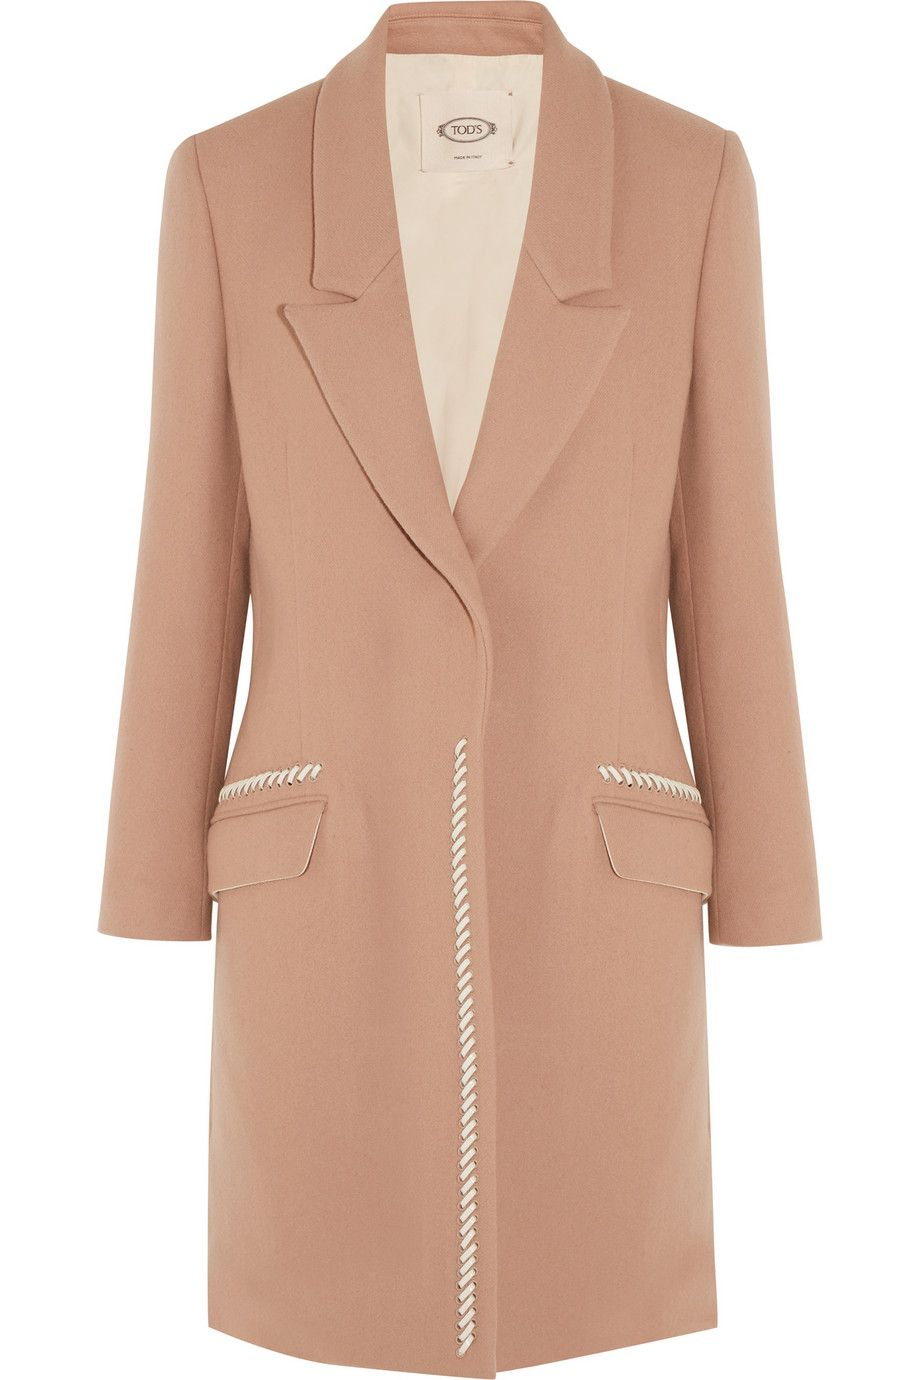 Tod's - Leather-trimmed wool and cashmere-blend coat